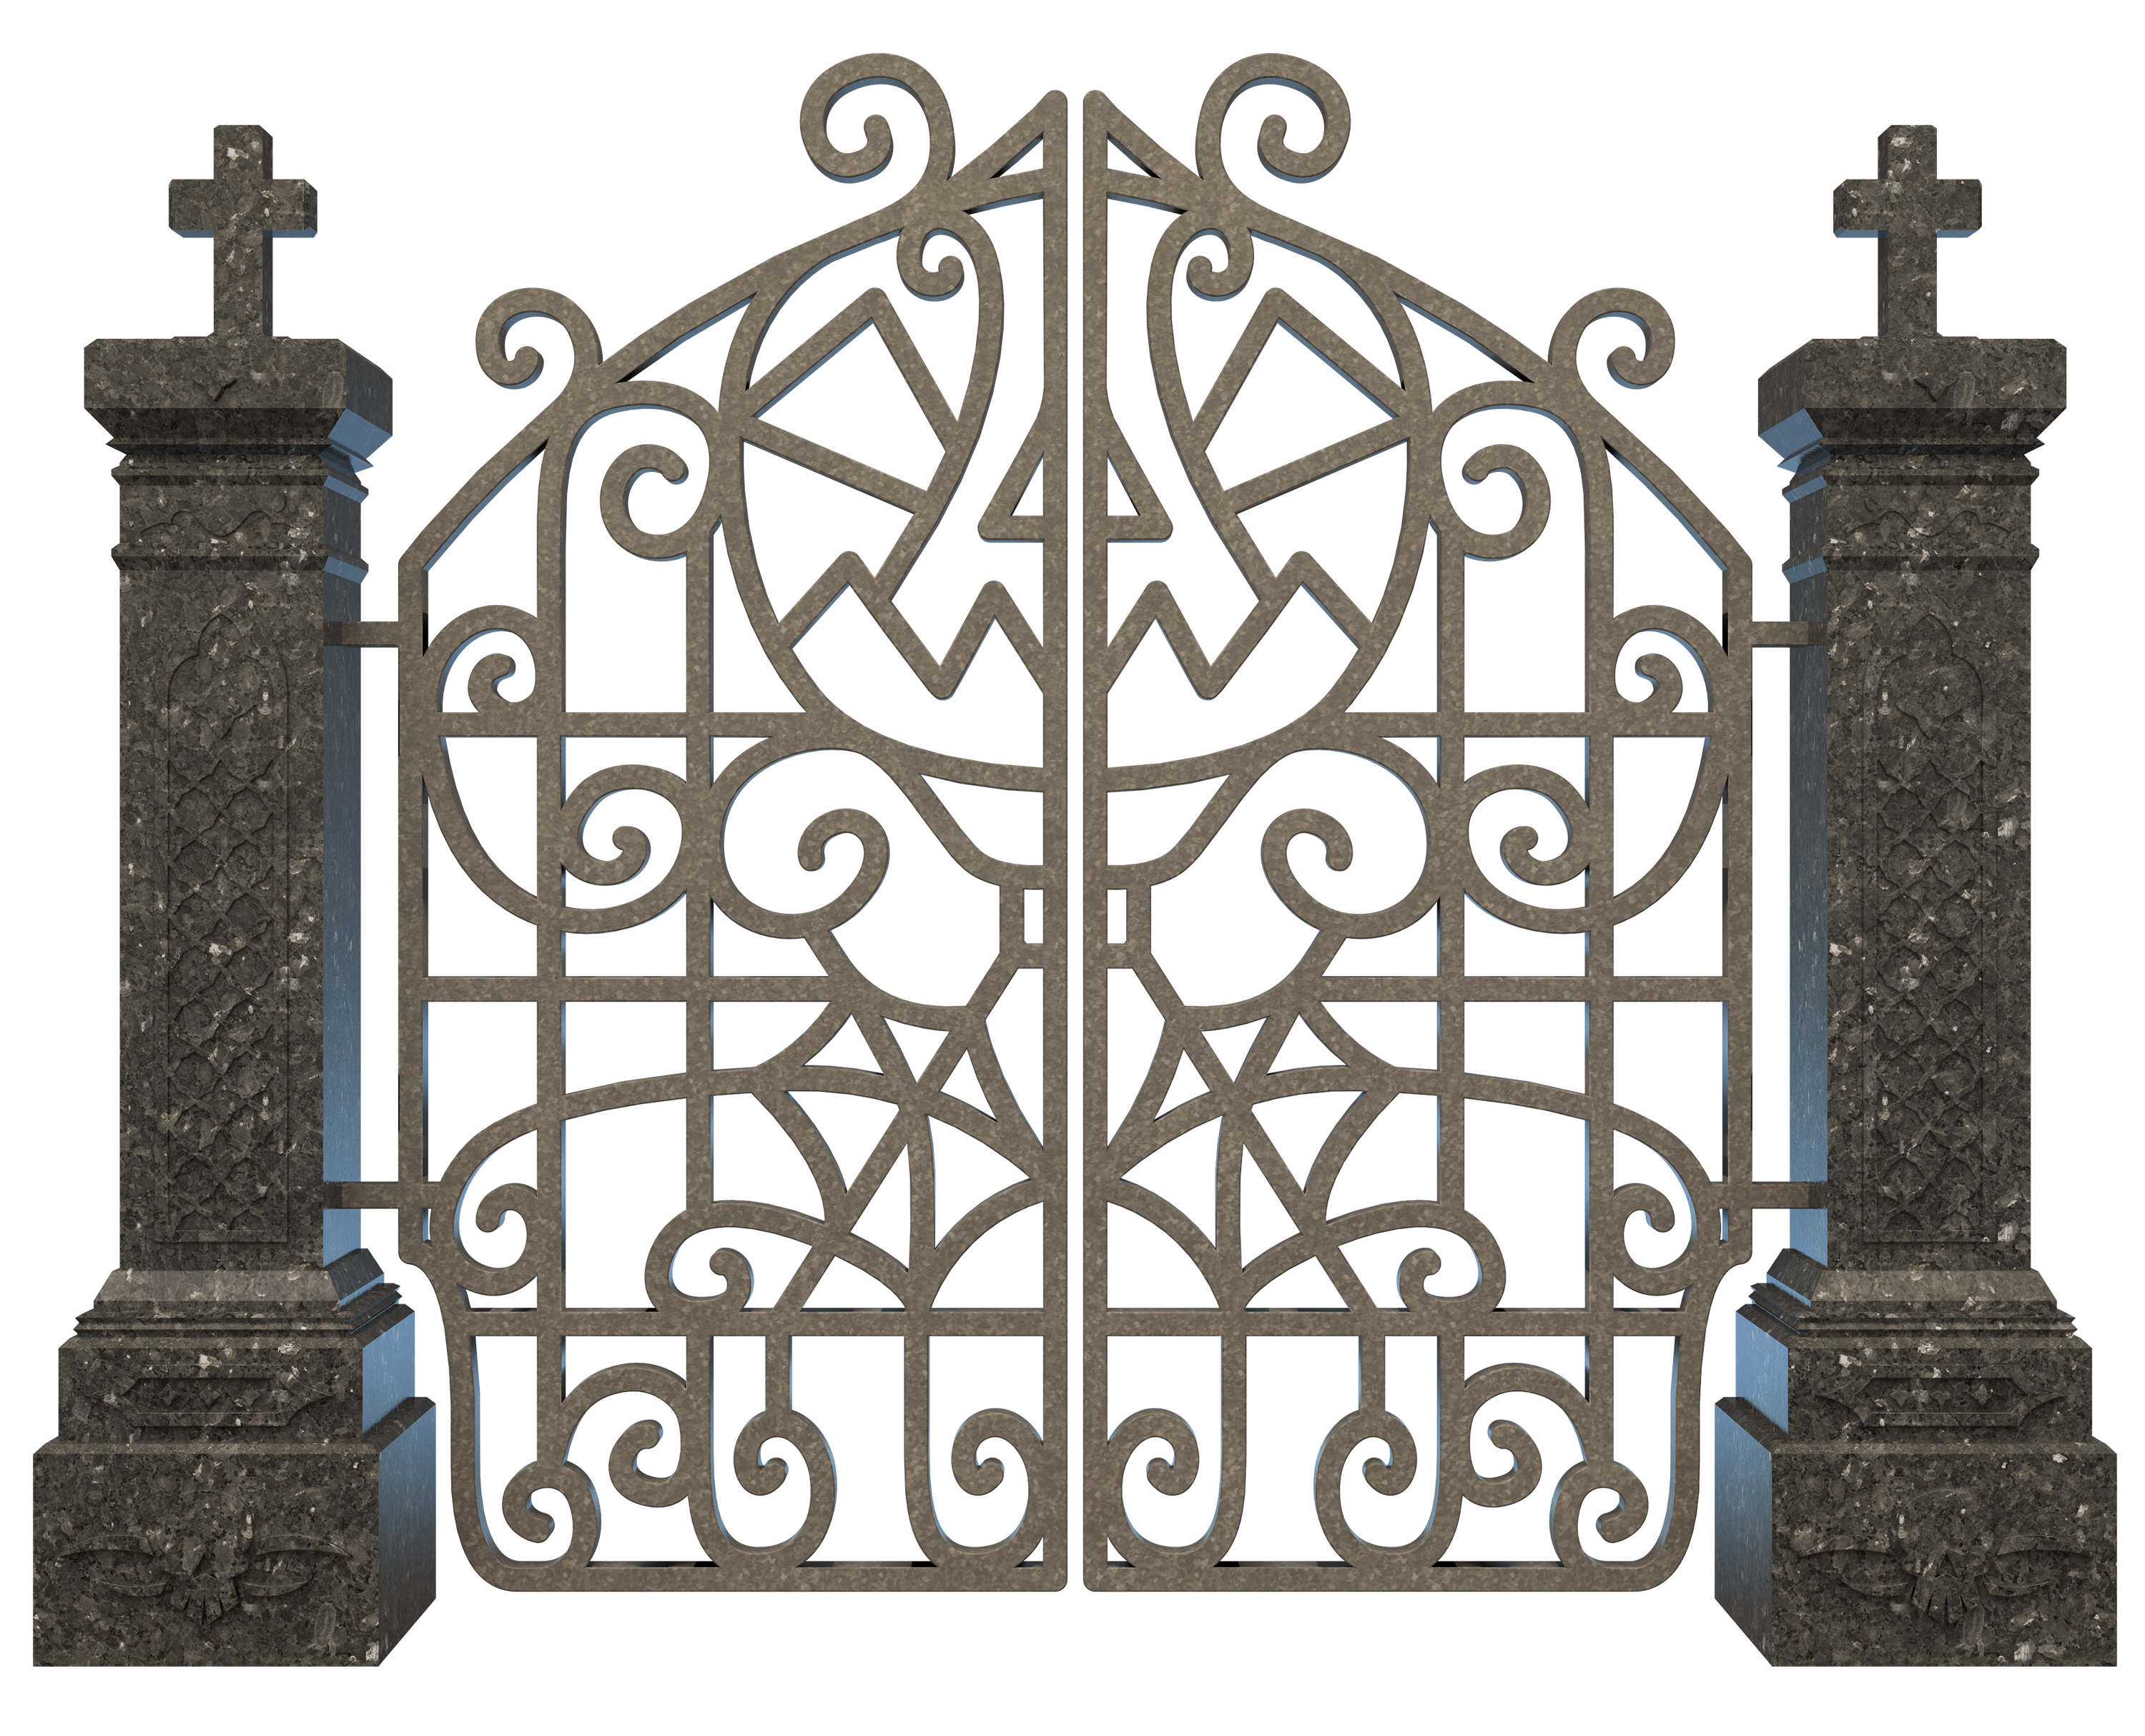 Halloween cemetery clipart picture library download Cemetery Clip art - Halloween Graveyard Gate PNG Clipart Image 3000 ... picture library download